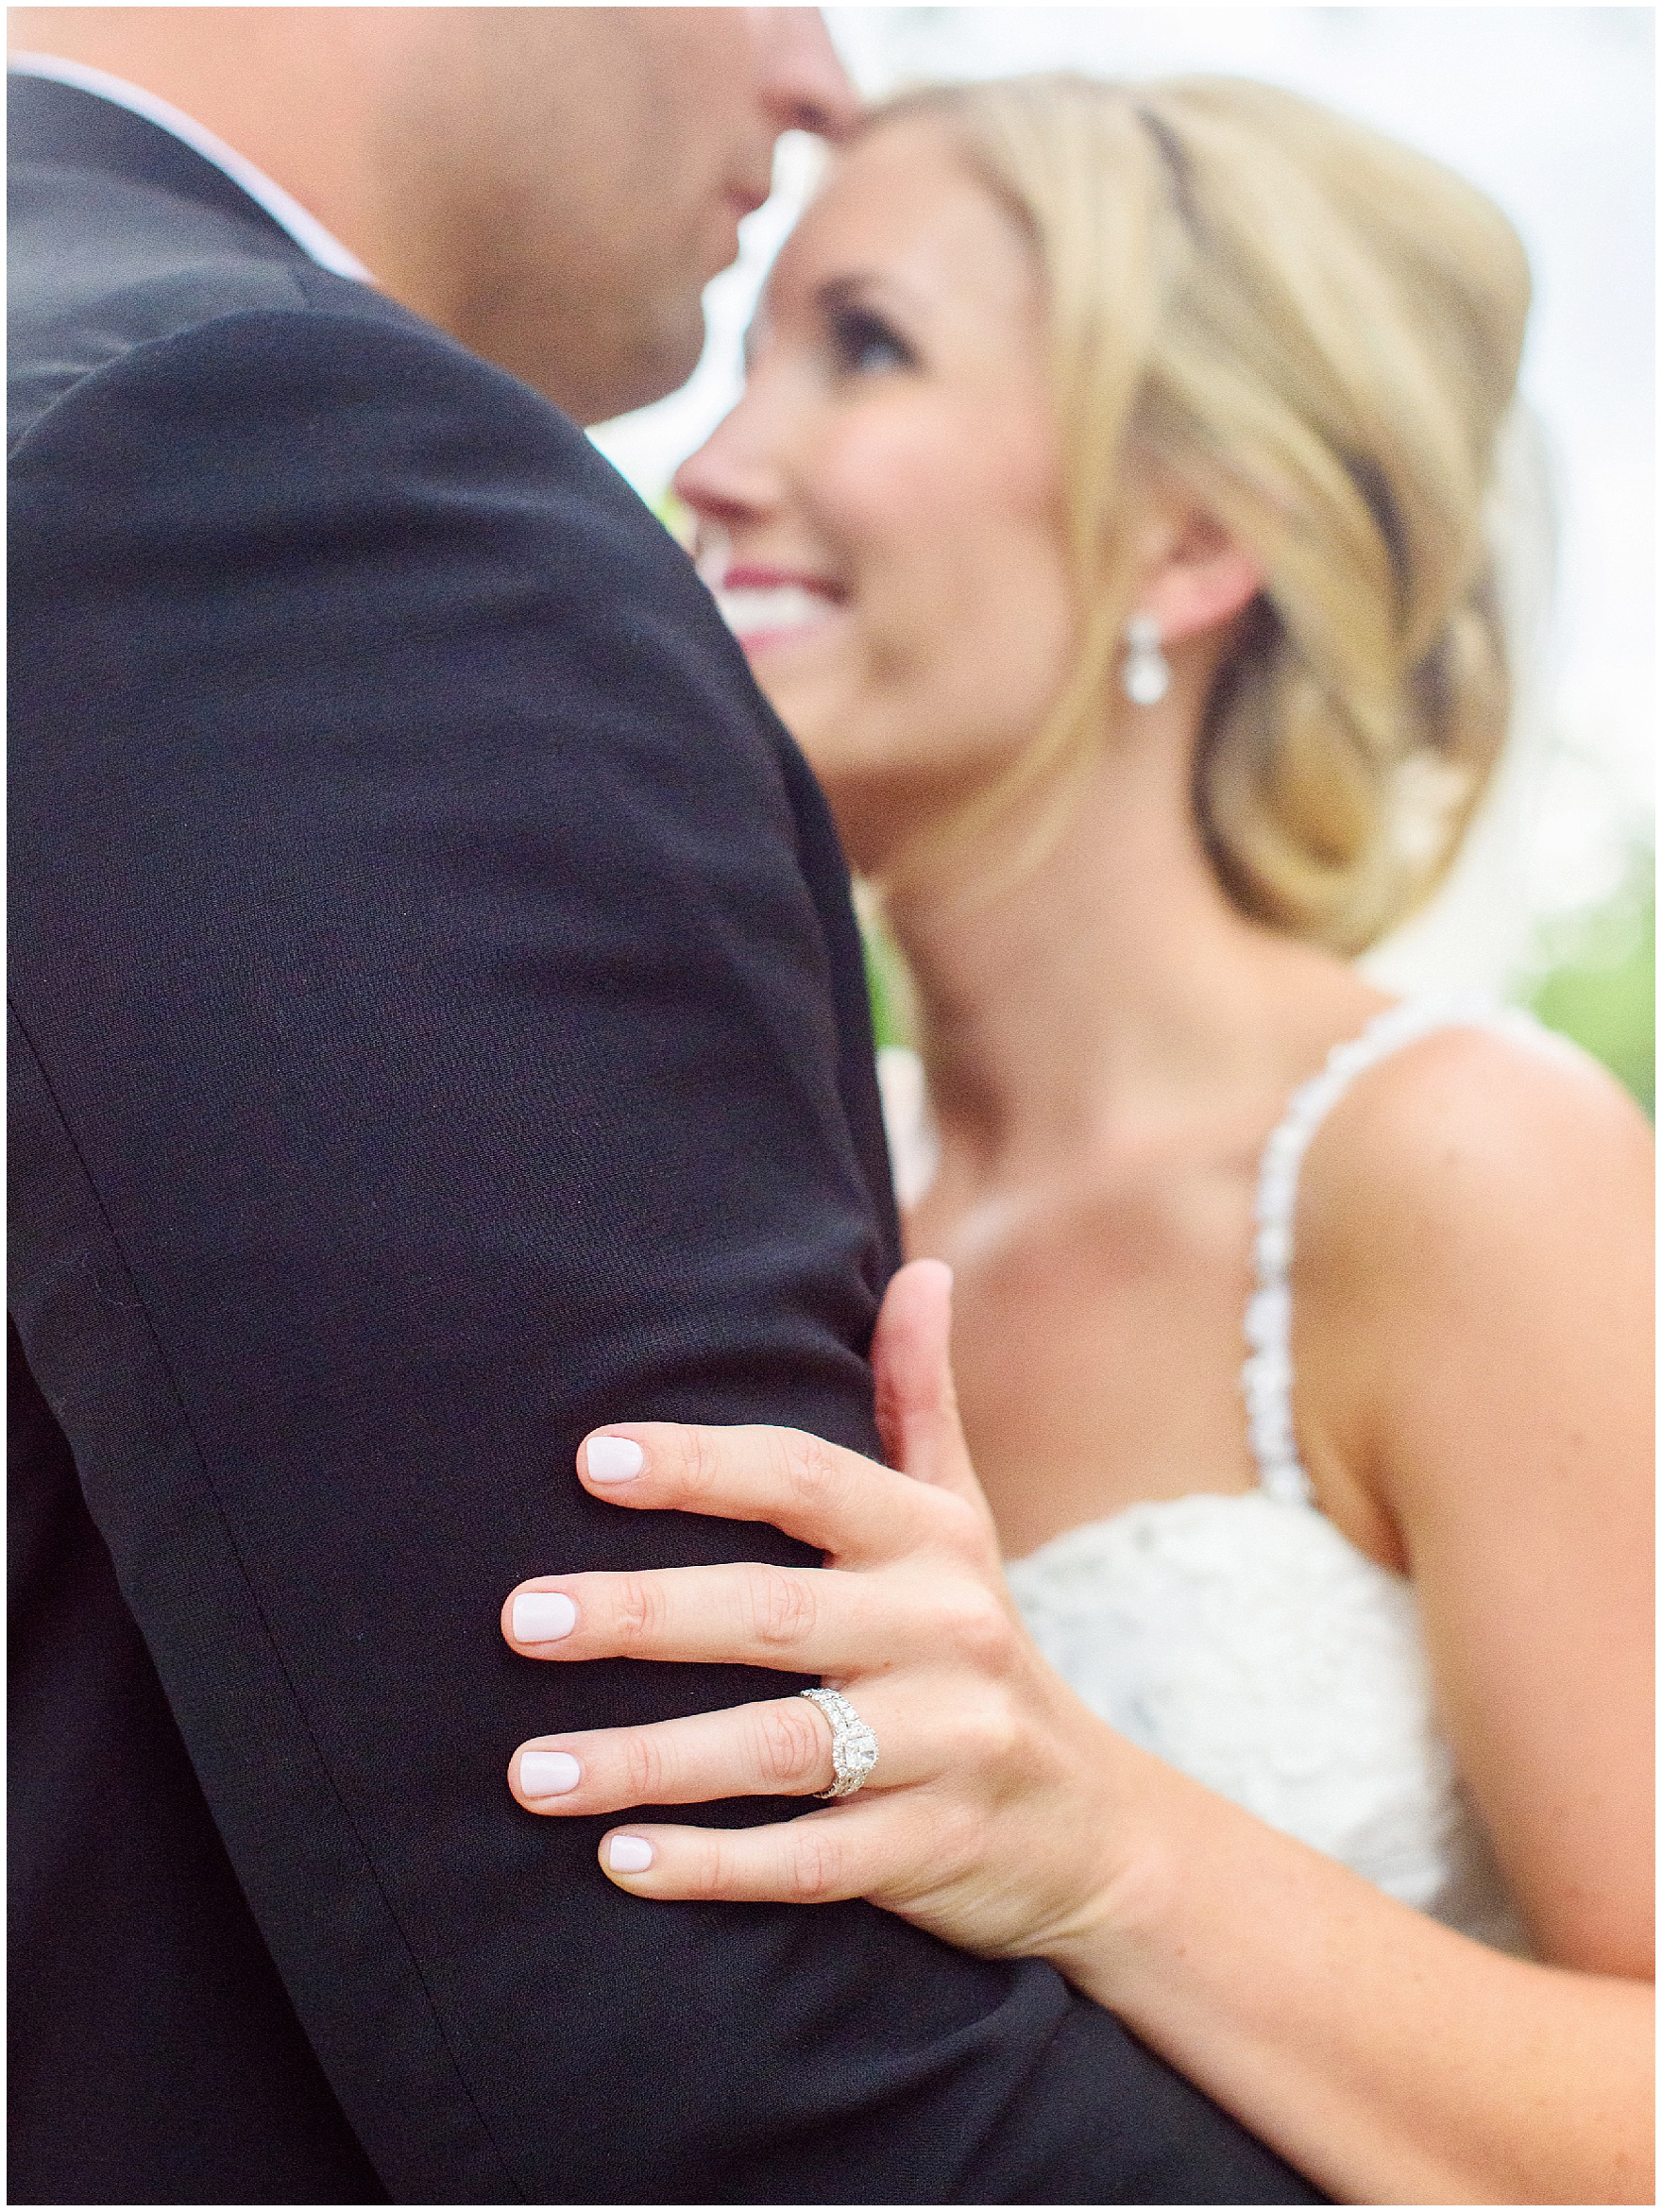 A bride and groom embrace during their Itasca Country Club Illinois wedding.